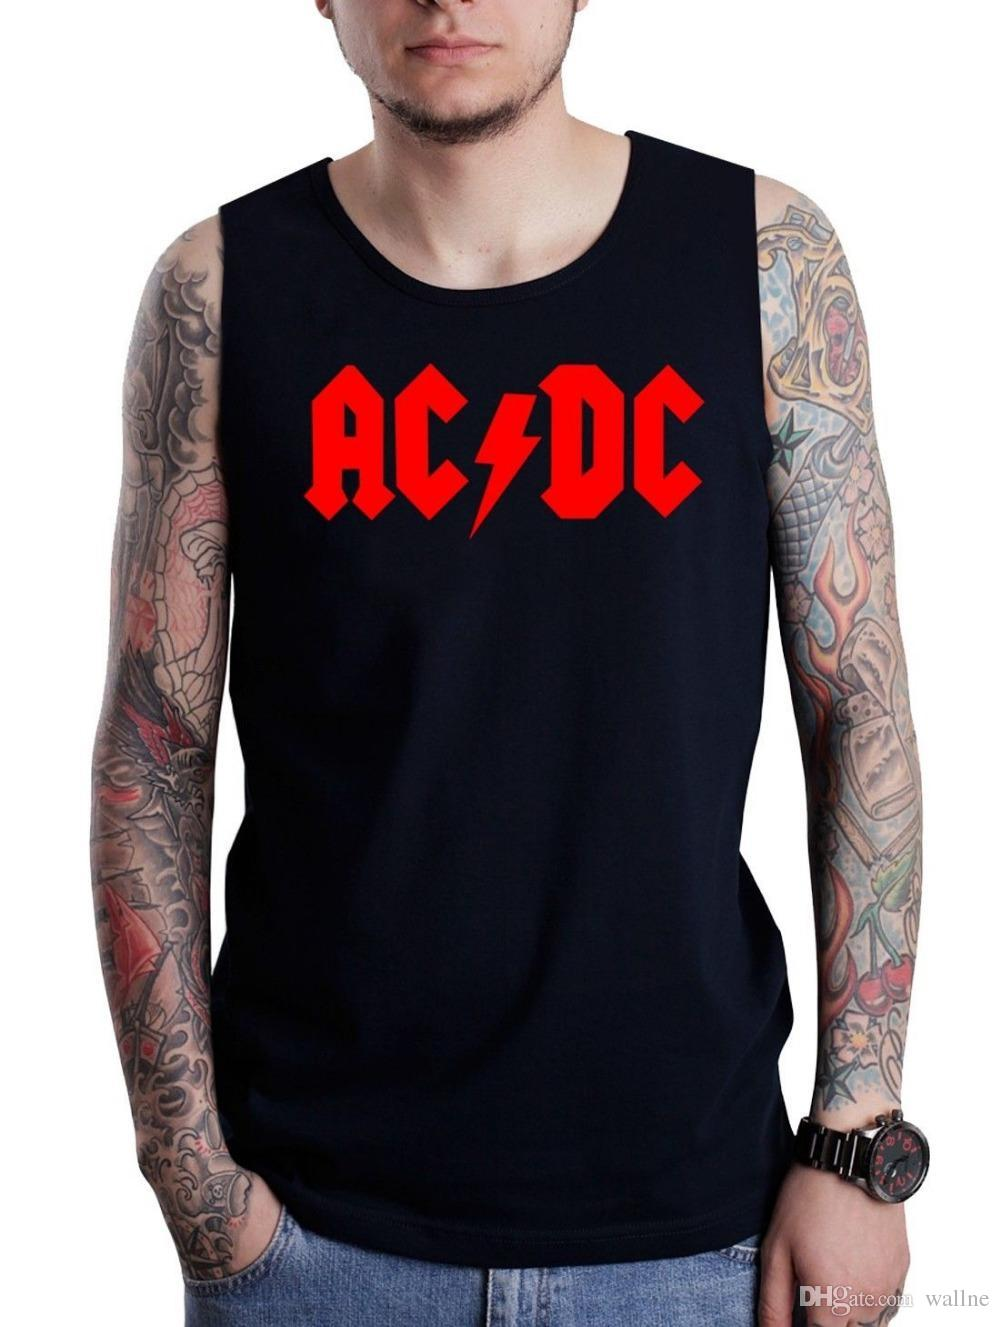 0435a0ef340429 2019 Wholesale AC DC ACDC Men S Tank Top Rock Metal Band Red Logo Printed  Black Sleeveless T Shirt Cotton Casual Music College Vests Size S From  Wallne